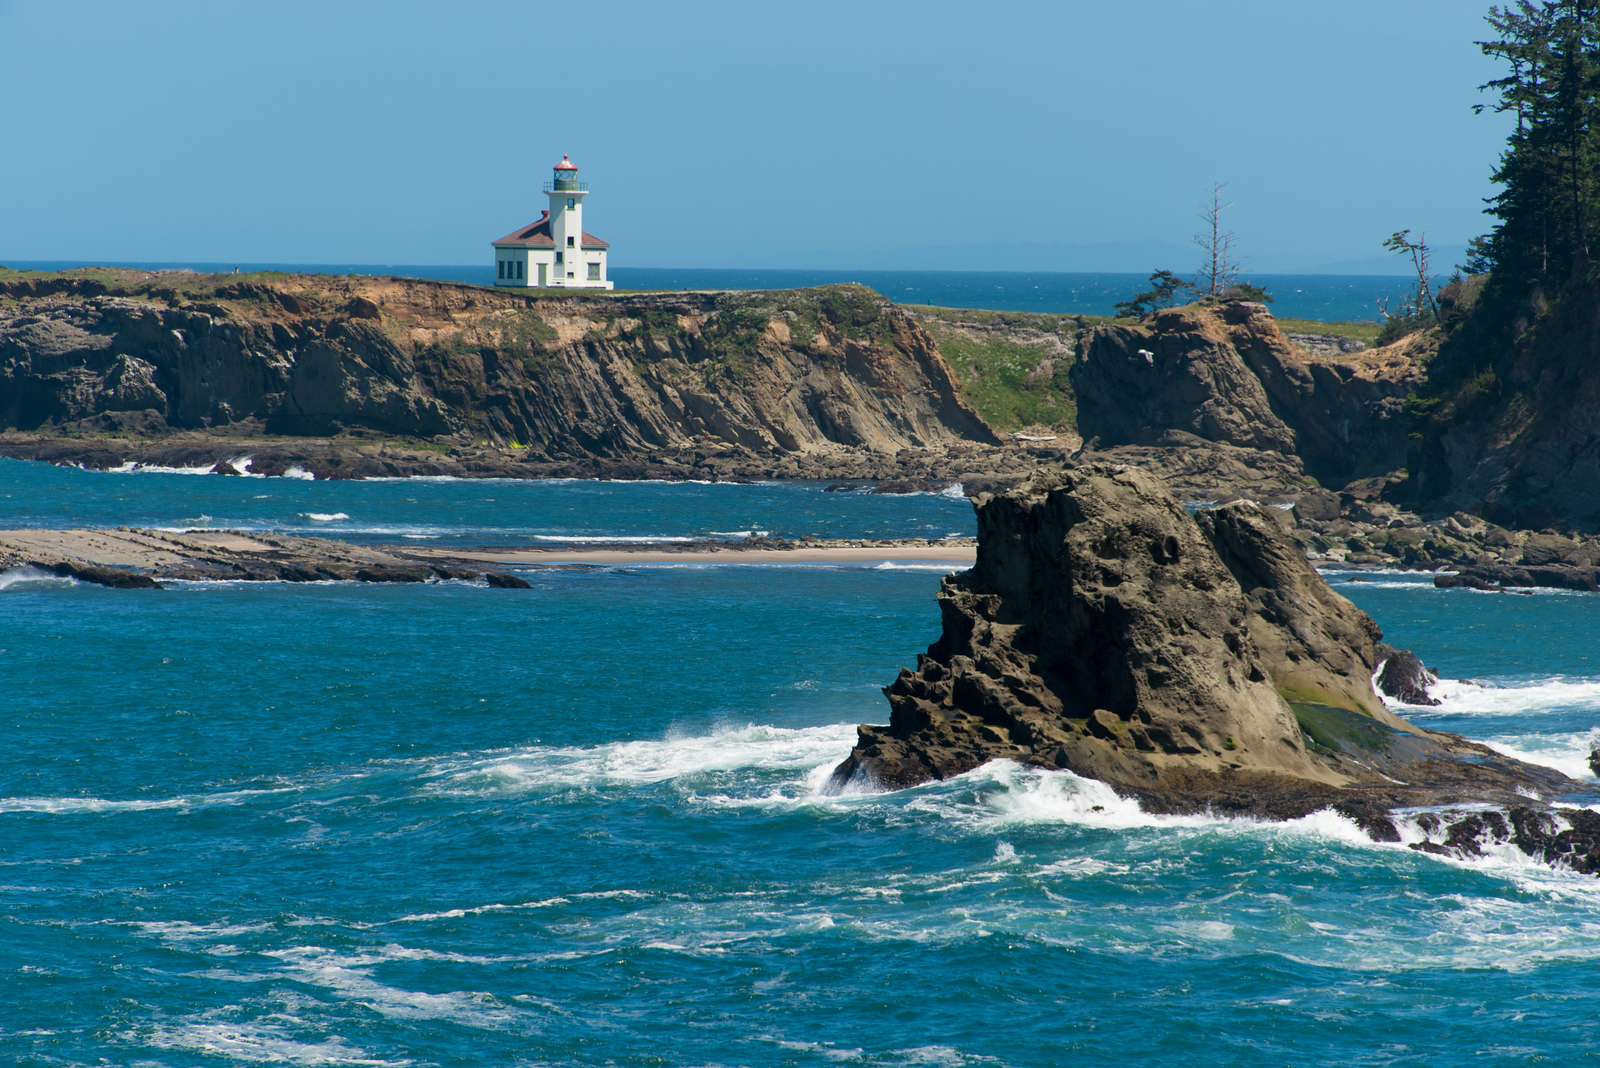 Cape Arago lighthouse on north end of sunset bay.